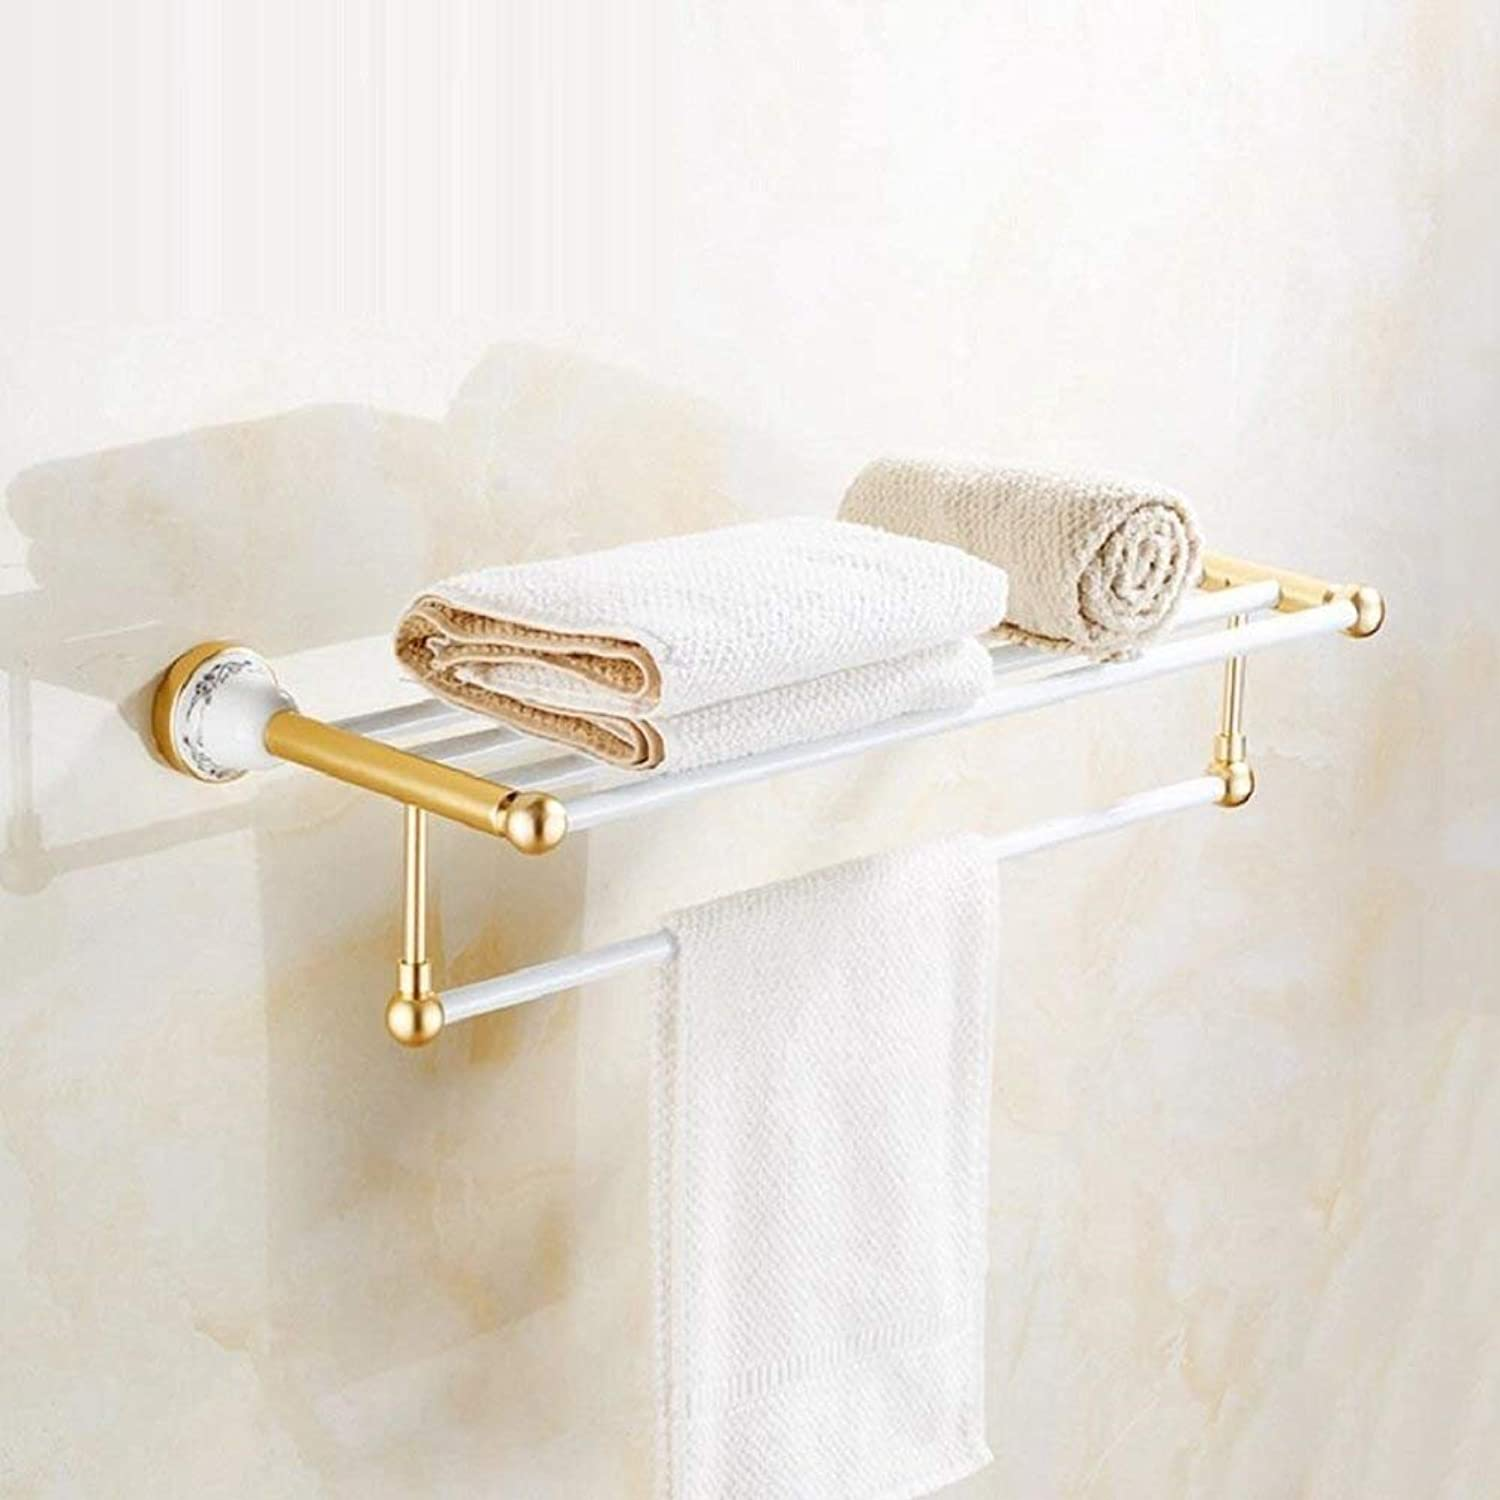 European Style Retro Dry-Towels Double - Robust and Ease of Inssizetion of The Cabinet - a Bathroom in Aluminum Alloy of Hair-Towels,